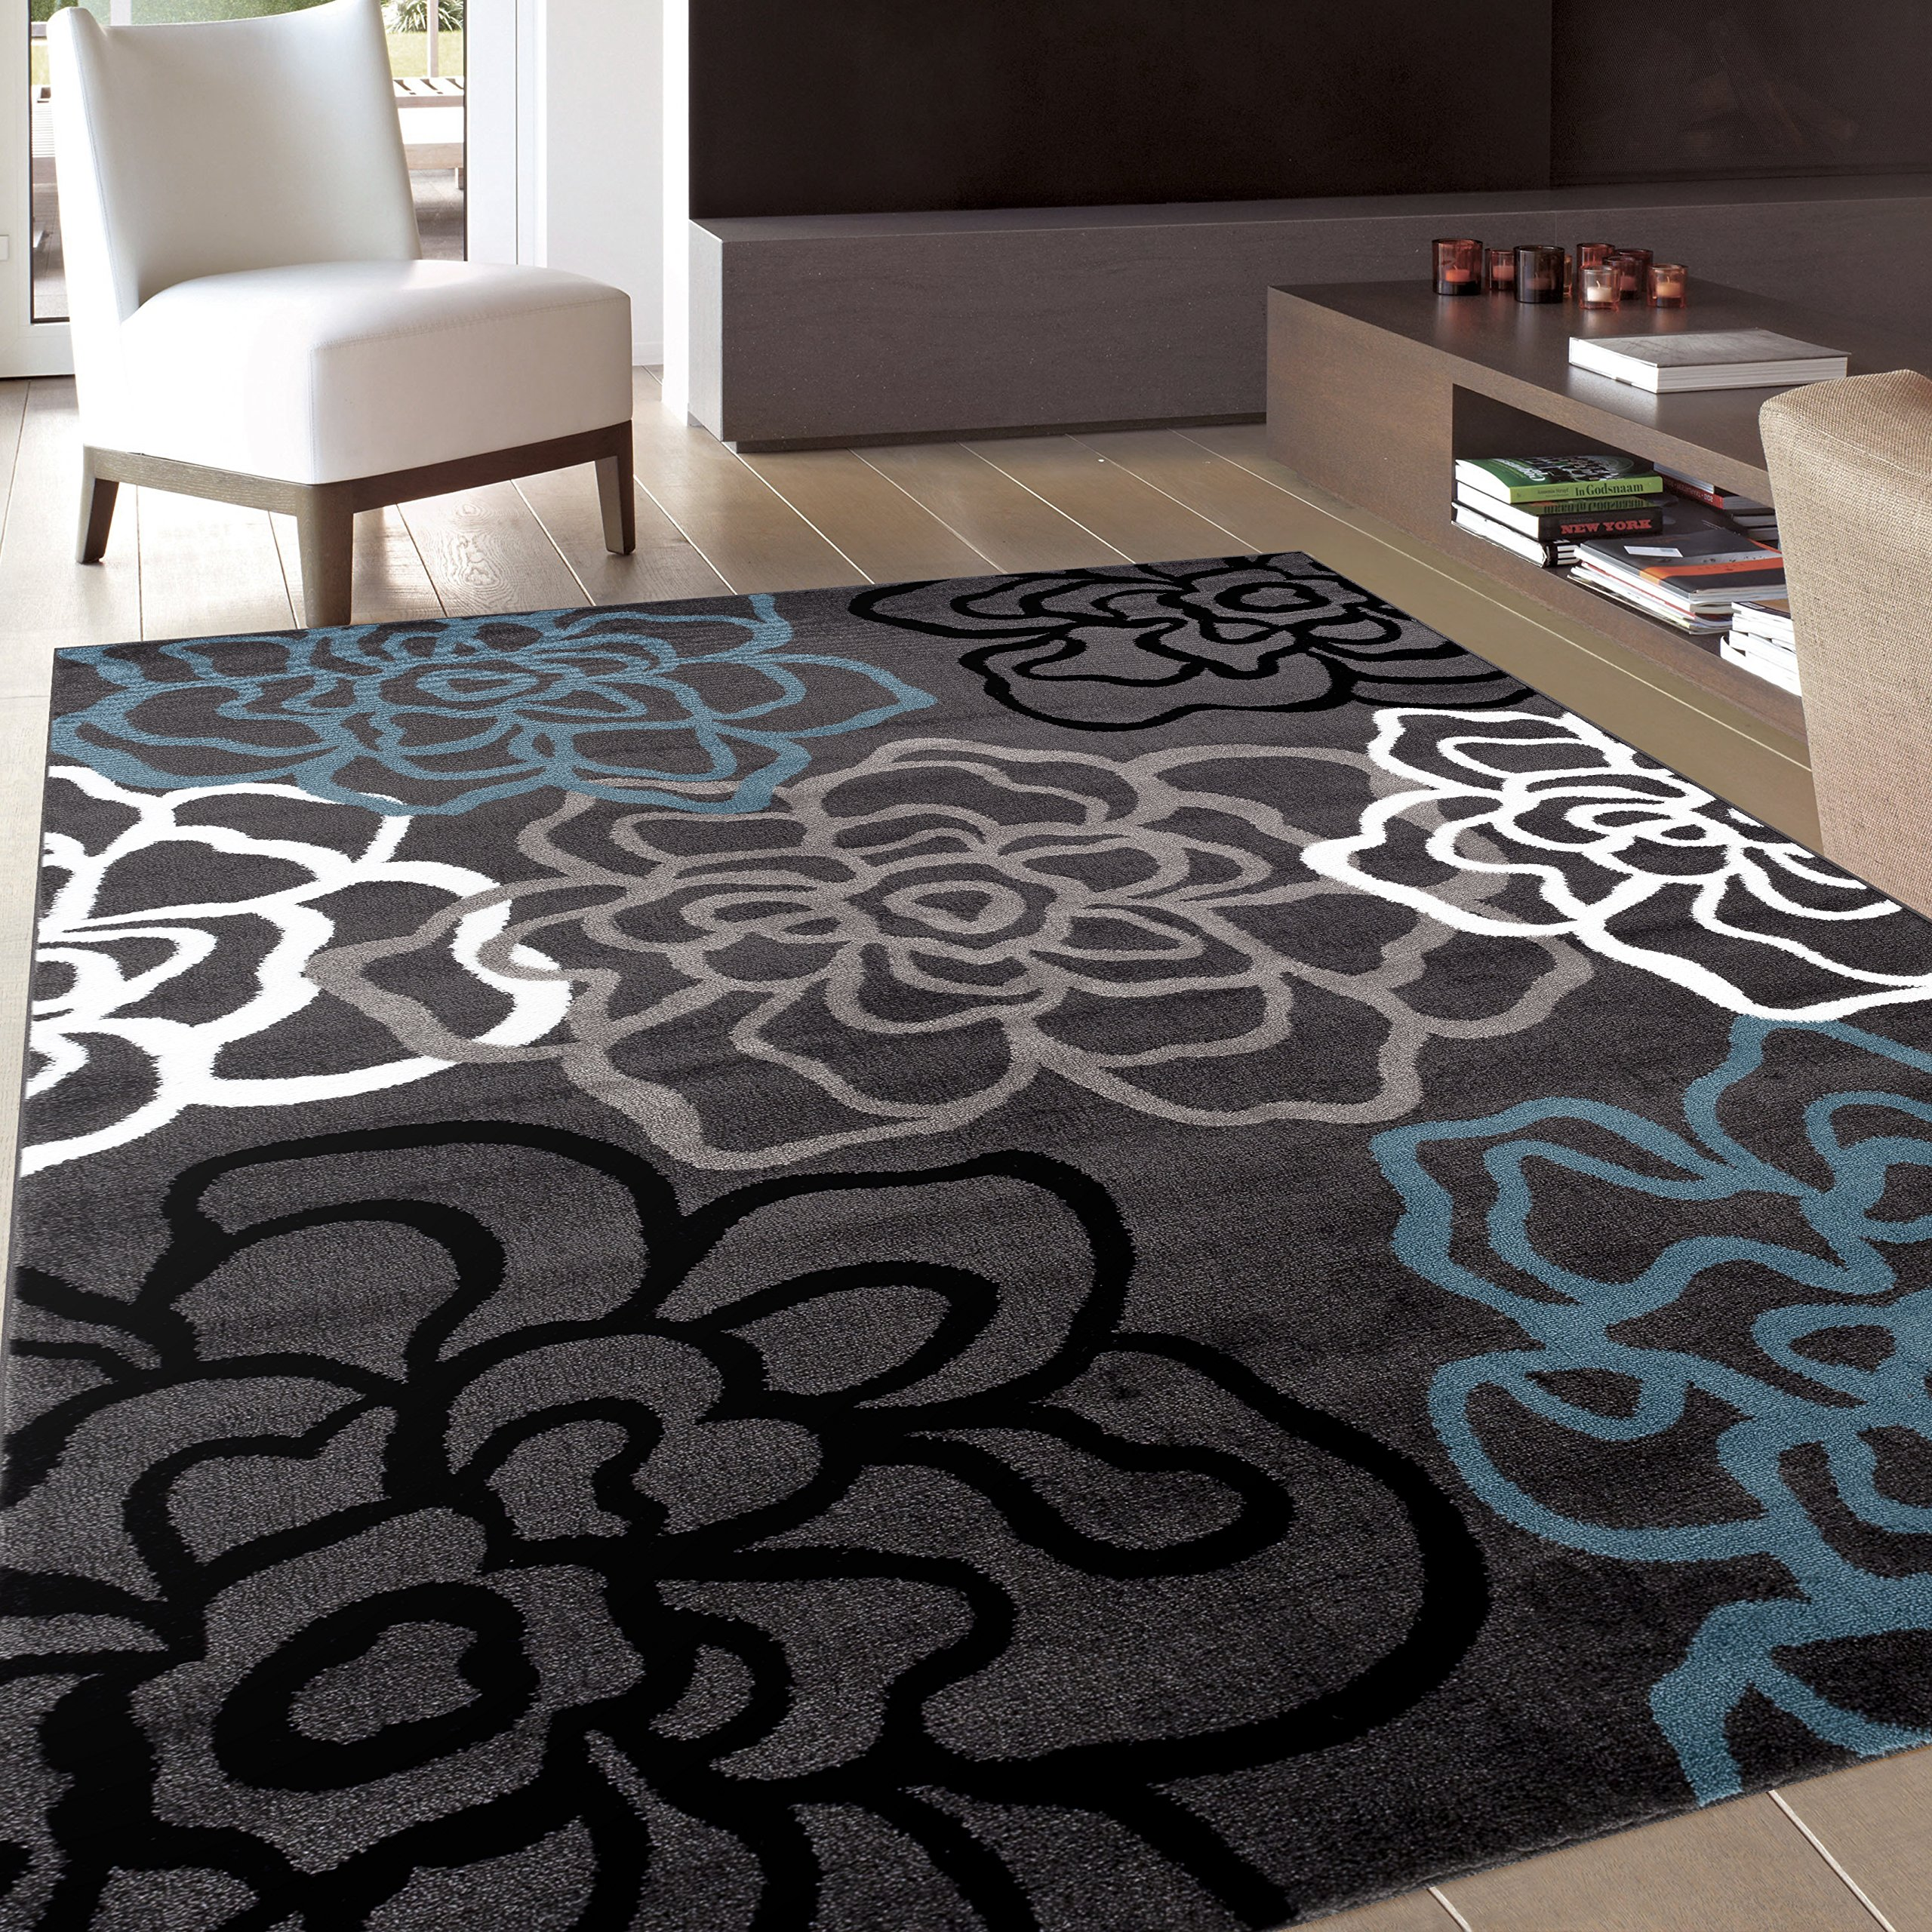 Contemporary Modern Floral Flowers Gray Area Rug 5' 3'' X 7' 3'' by Rugshop